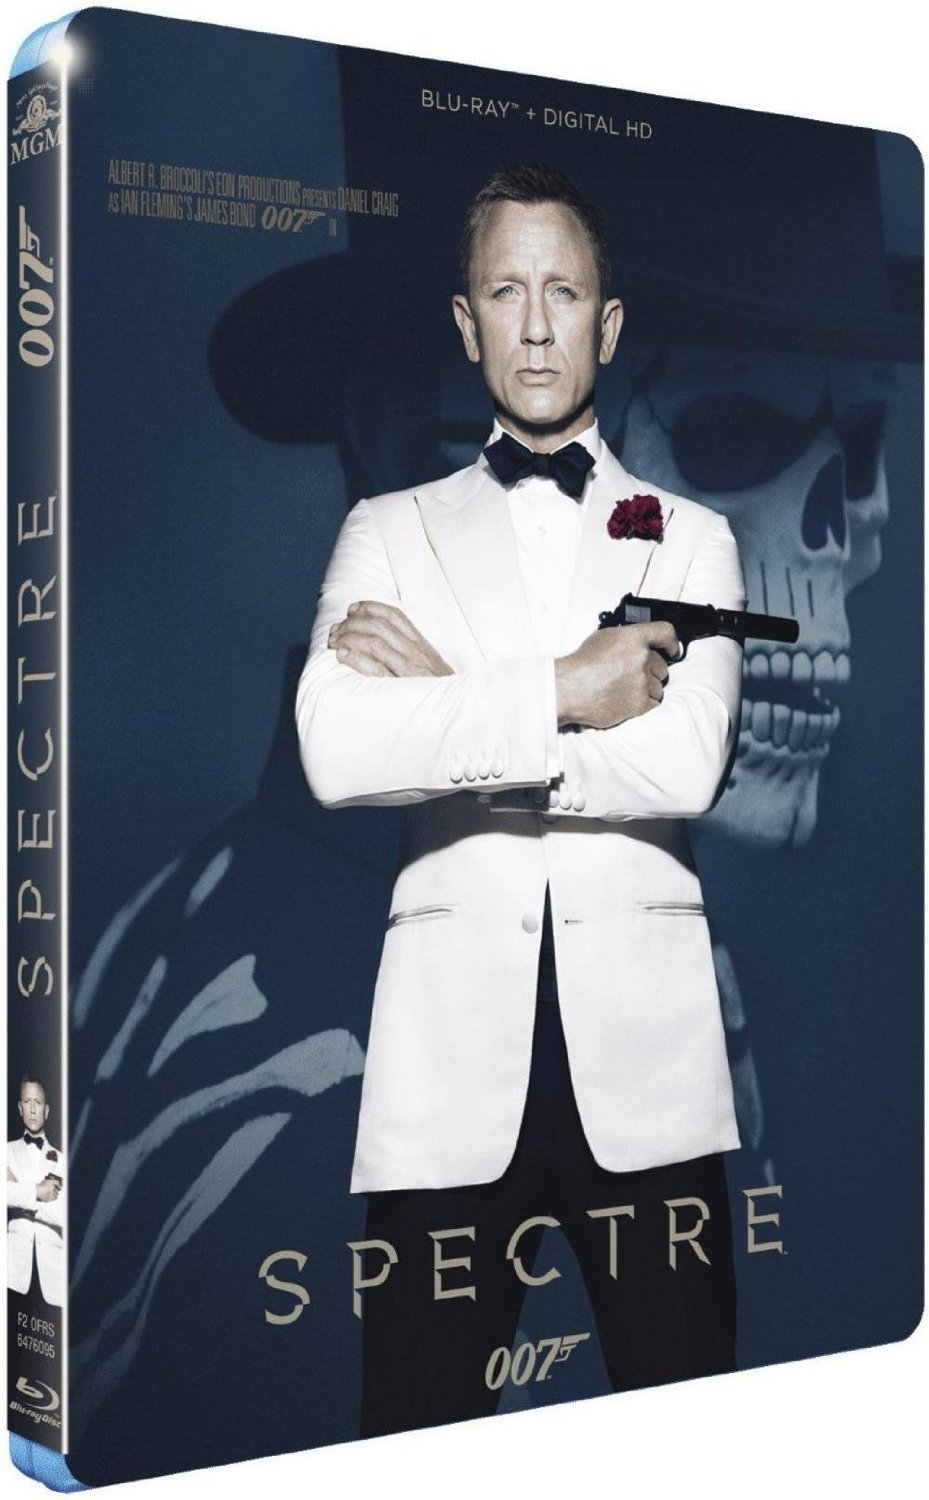 James Bond - Spectre [Blu-ray + Digital HD]